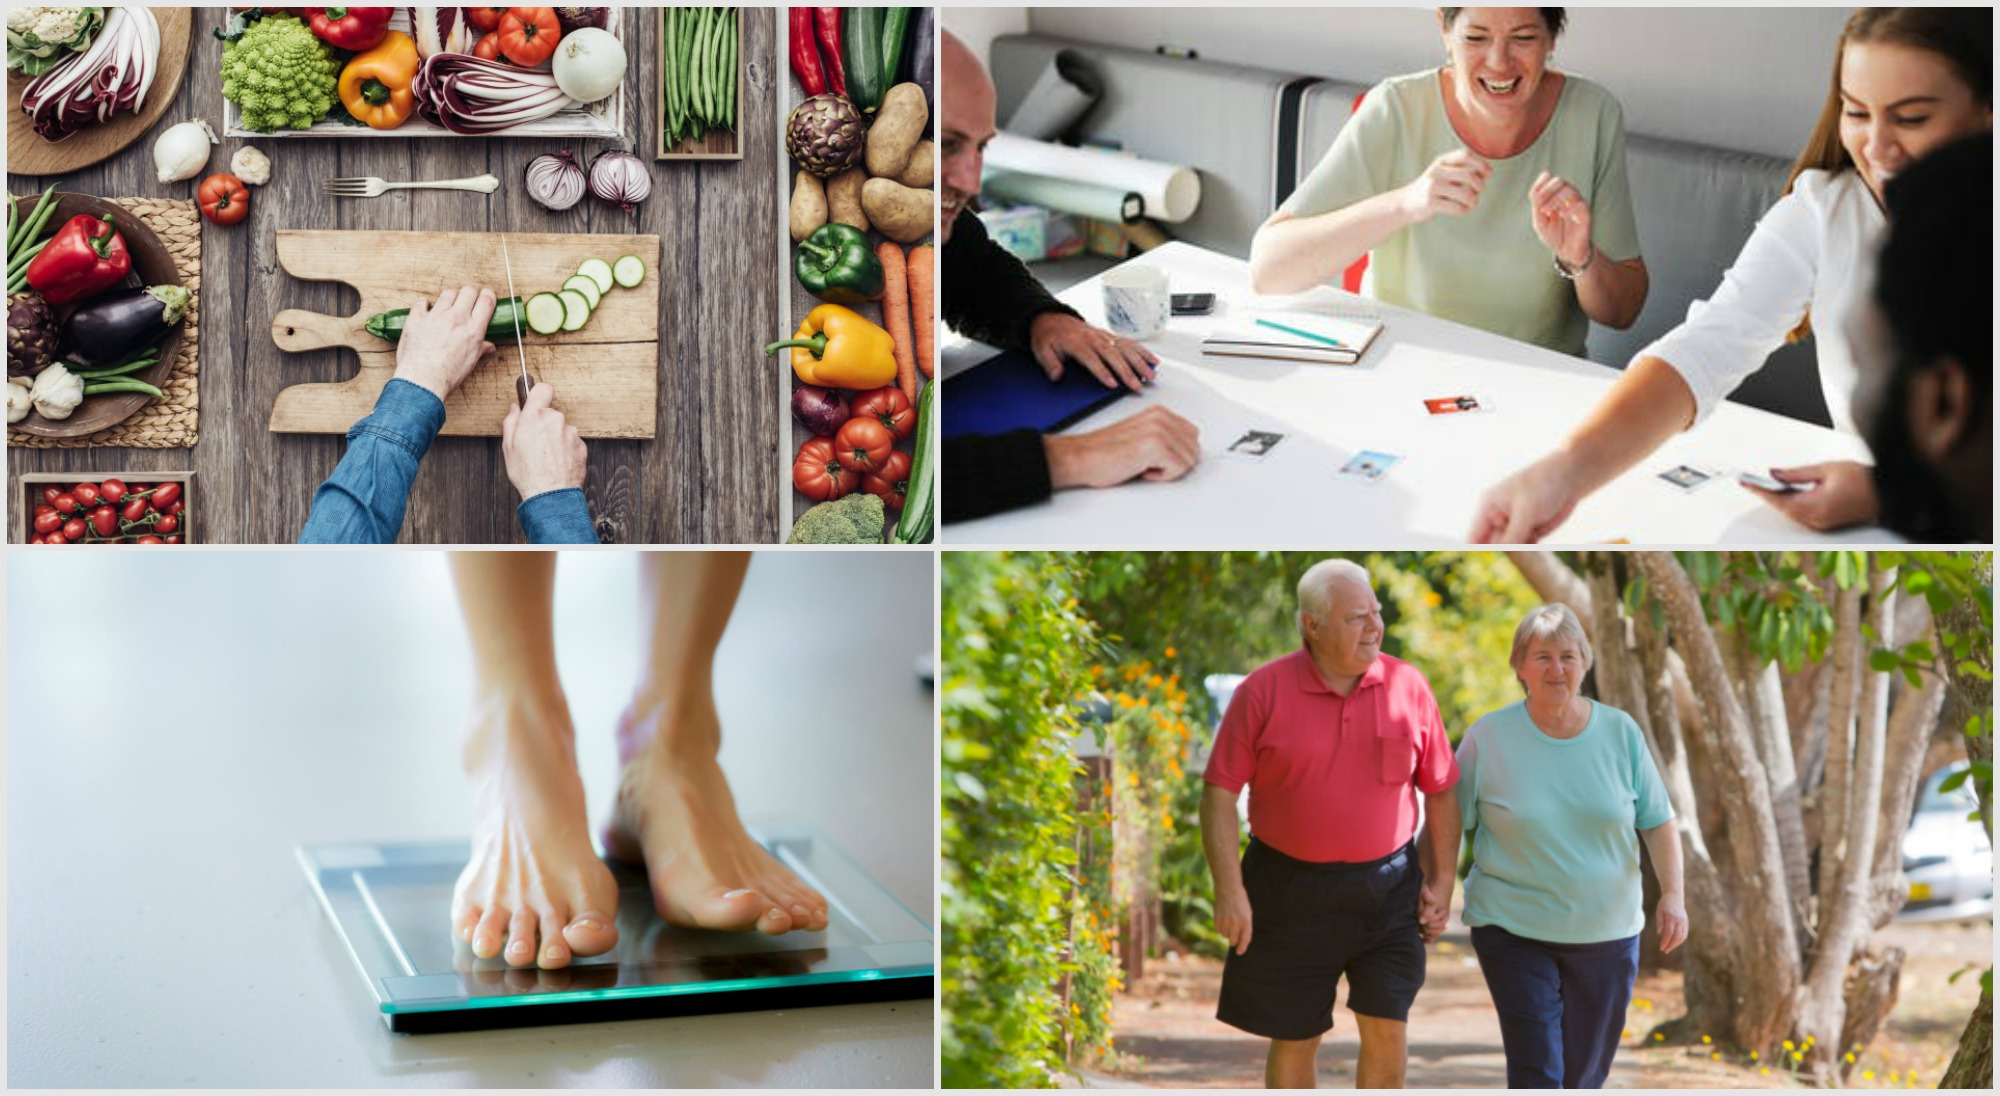 Click here for more information about the National Diabetes Prevention Program. -